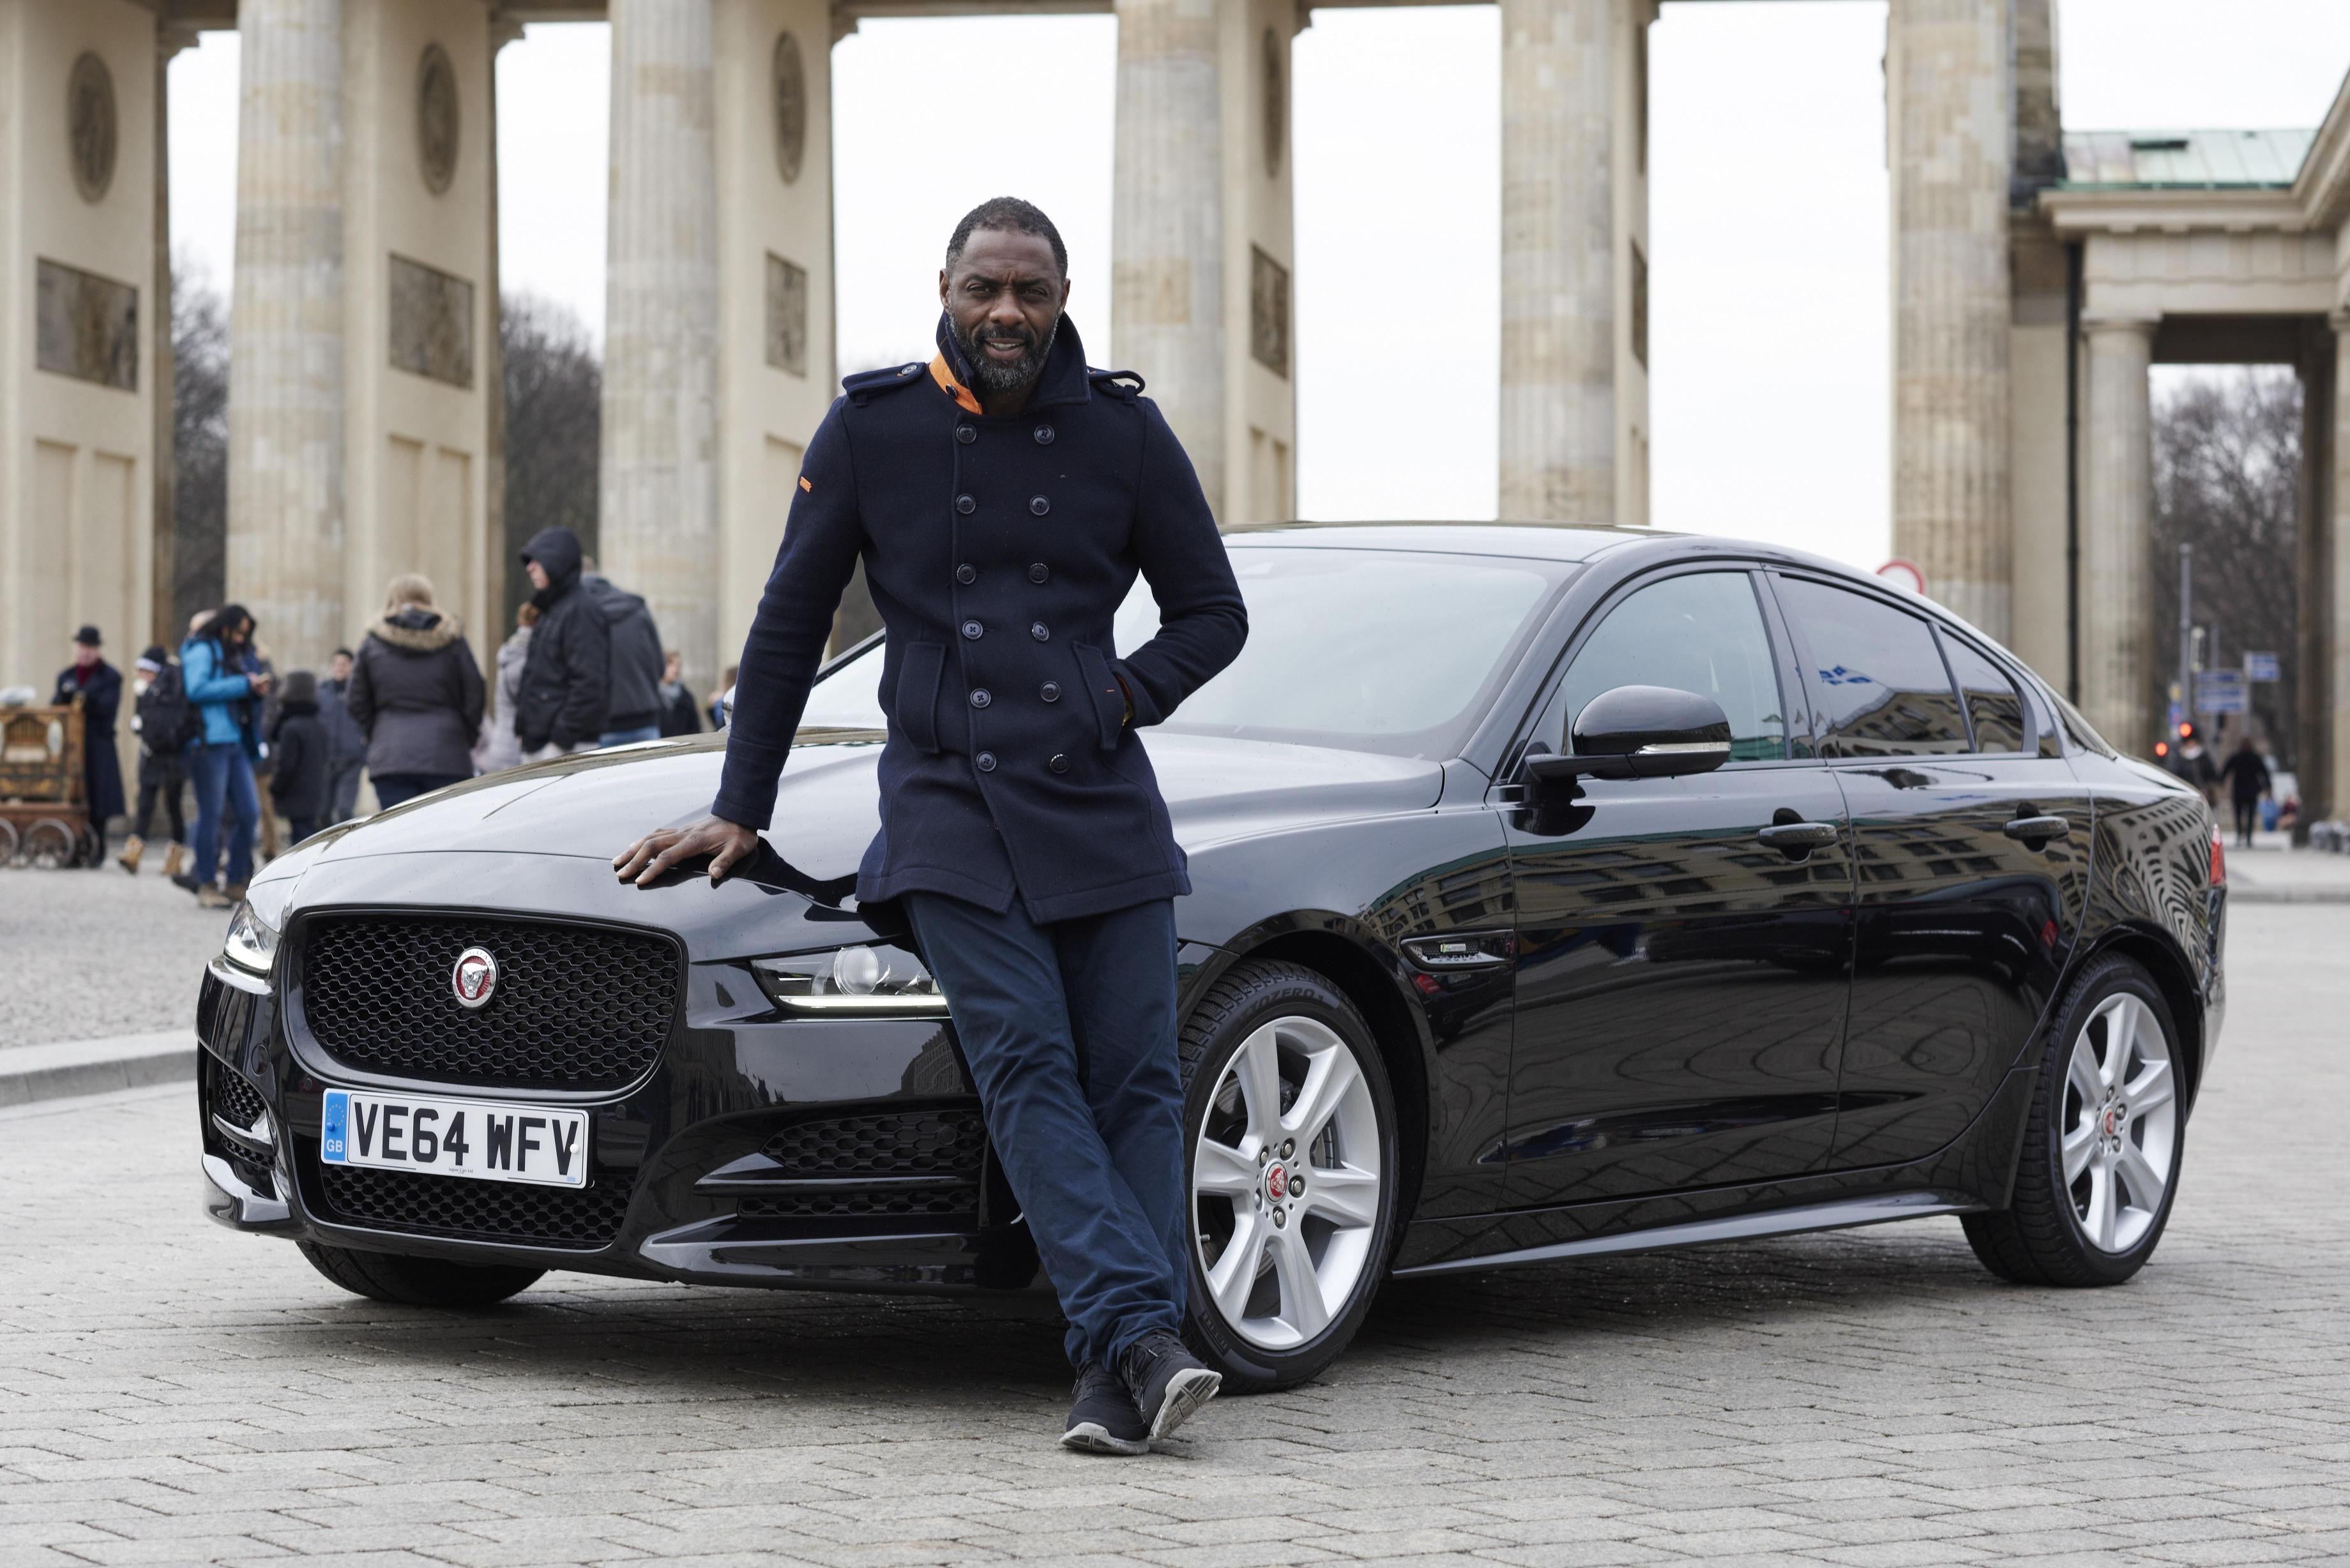 Idris Elba Drives Across Europe in the Sporty Jaguar XE to DJ a Party in Berlin